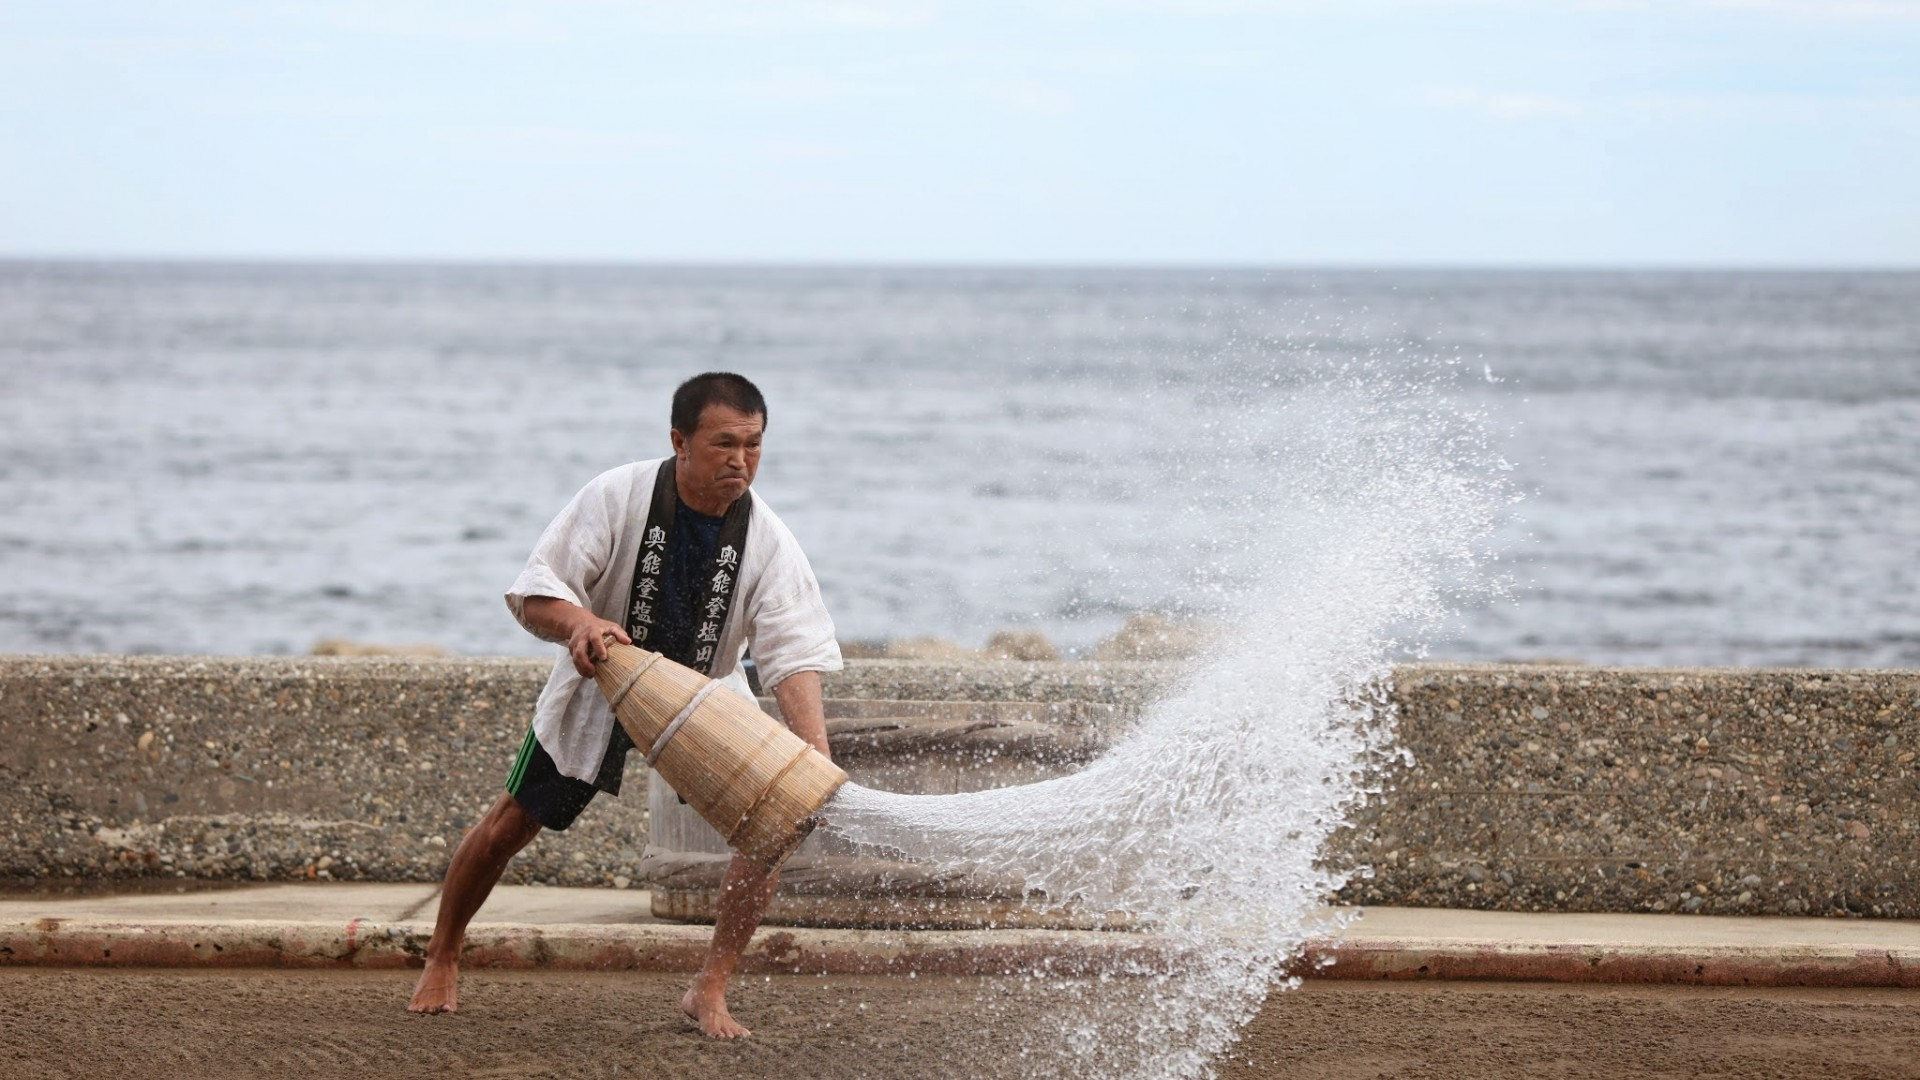 Fisherman in Oku-Noto, Japan